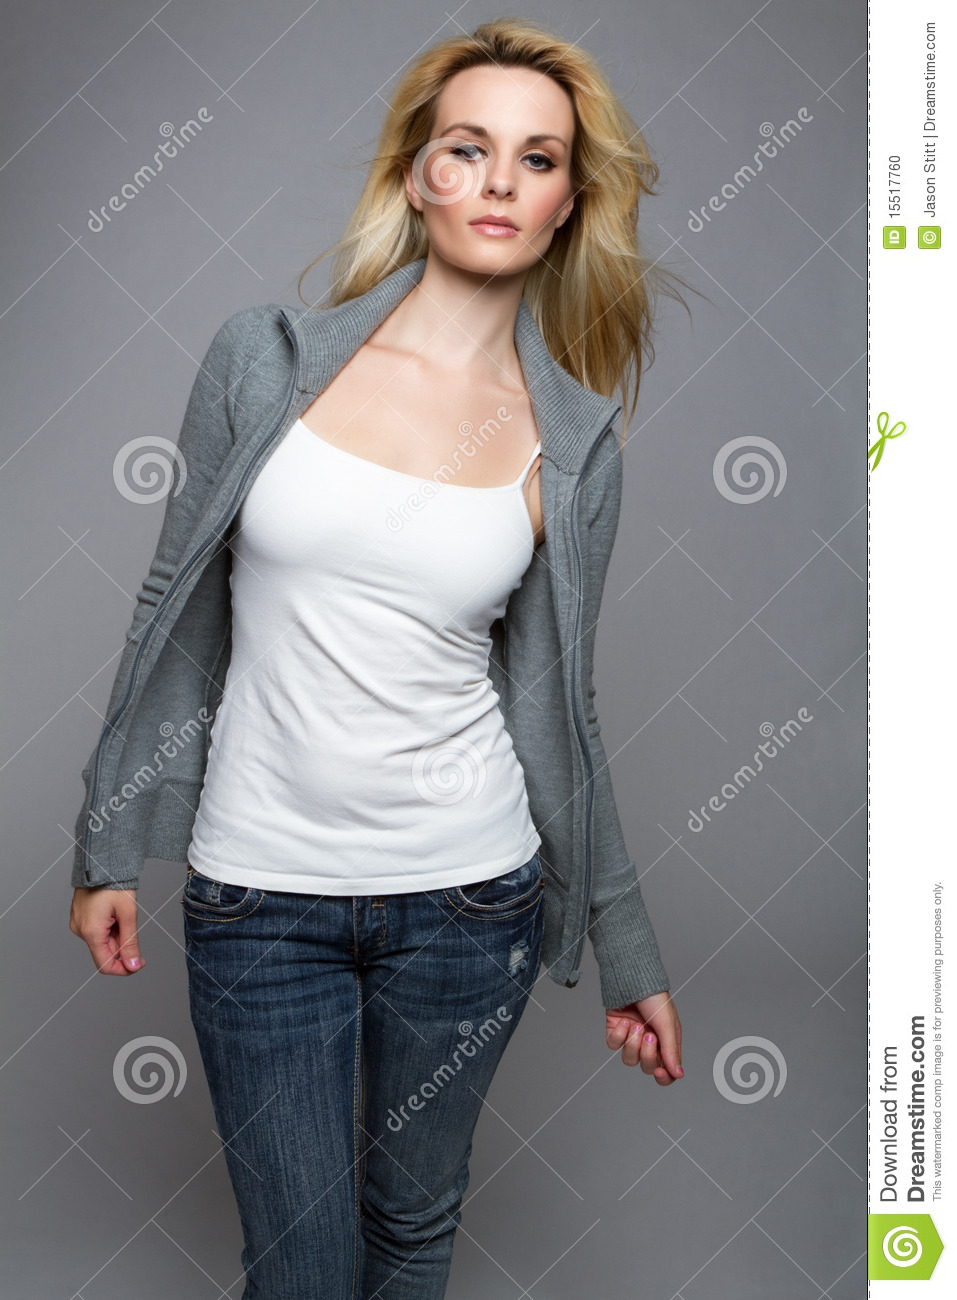 jeans sweater woman stock photo image 15517760